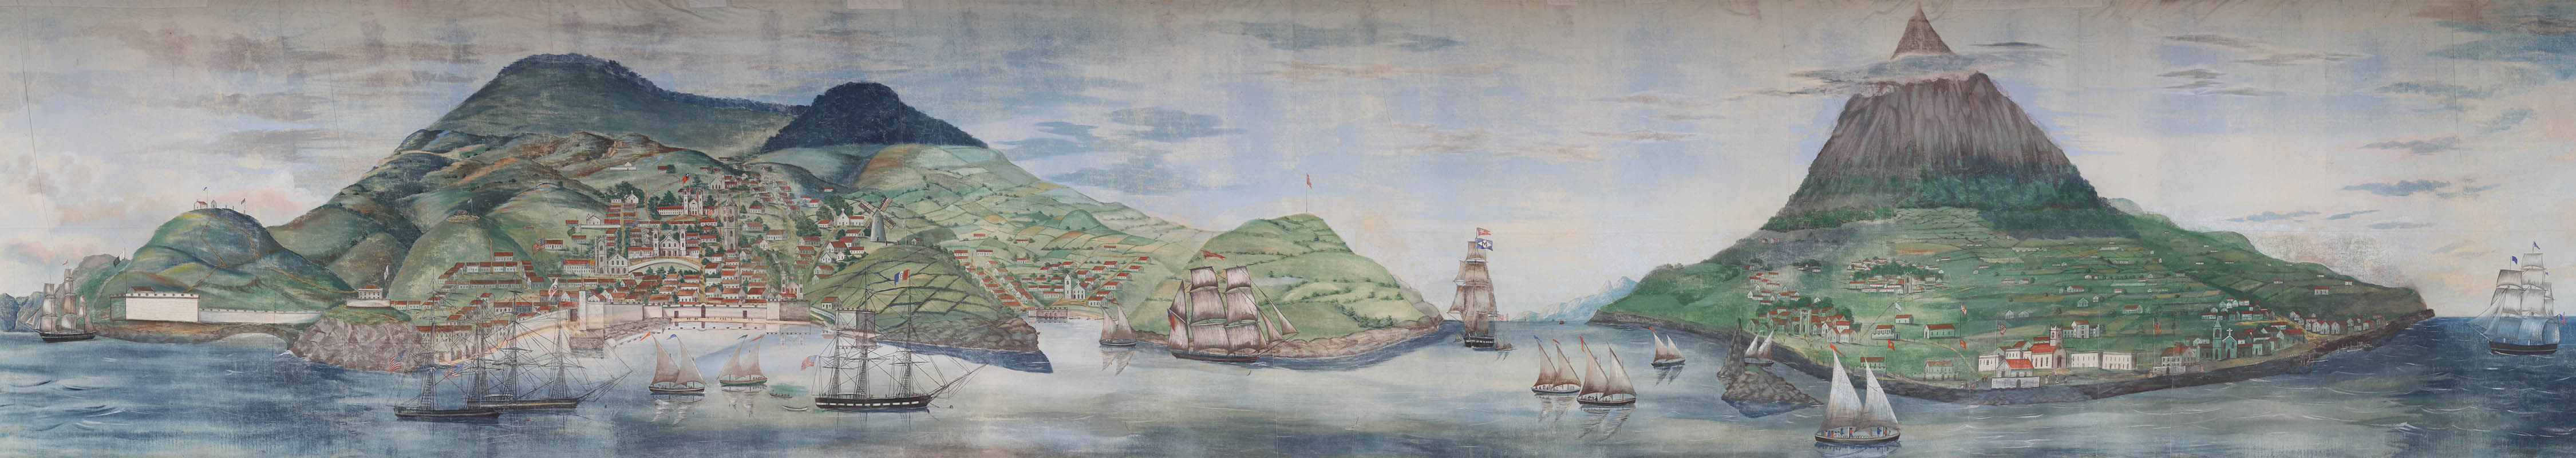 The grand panorama of a whaling voyage 'round the world